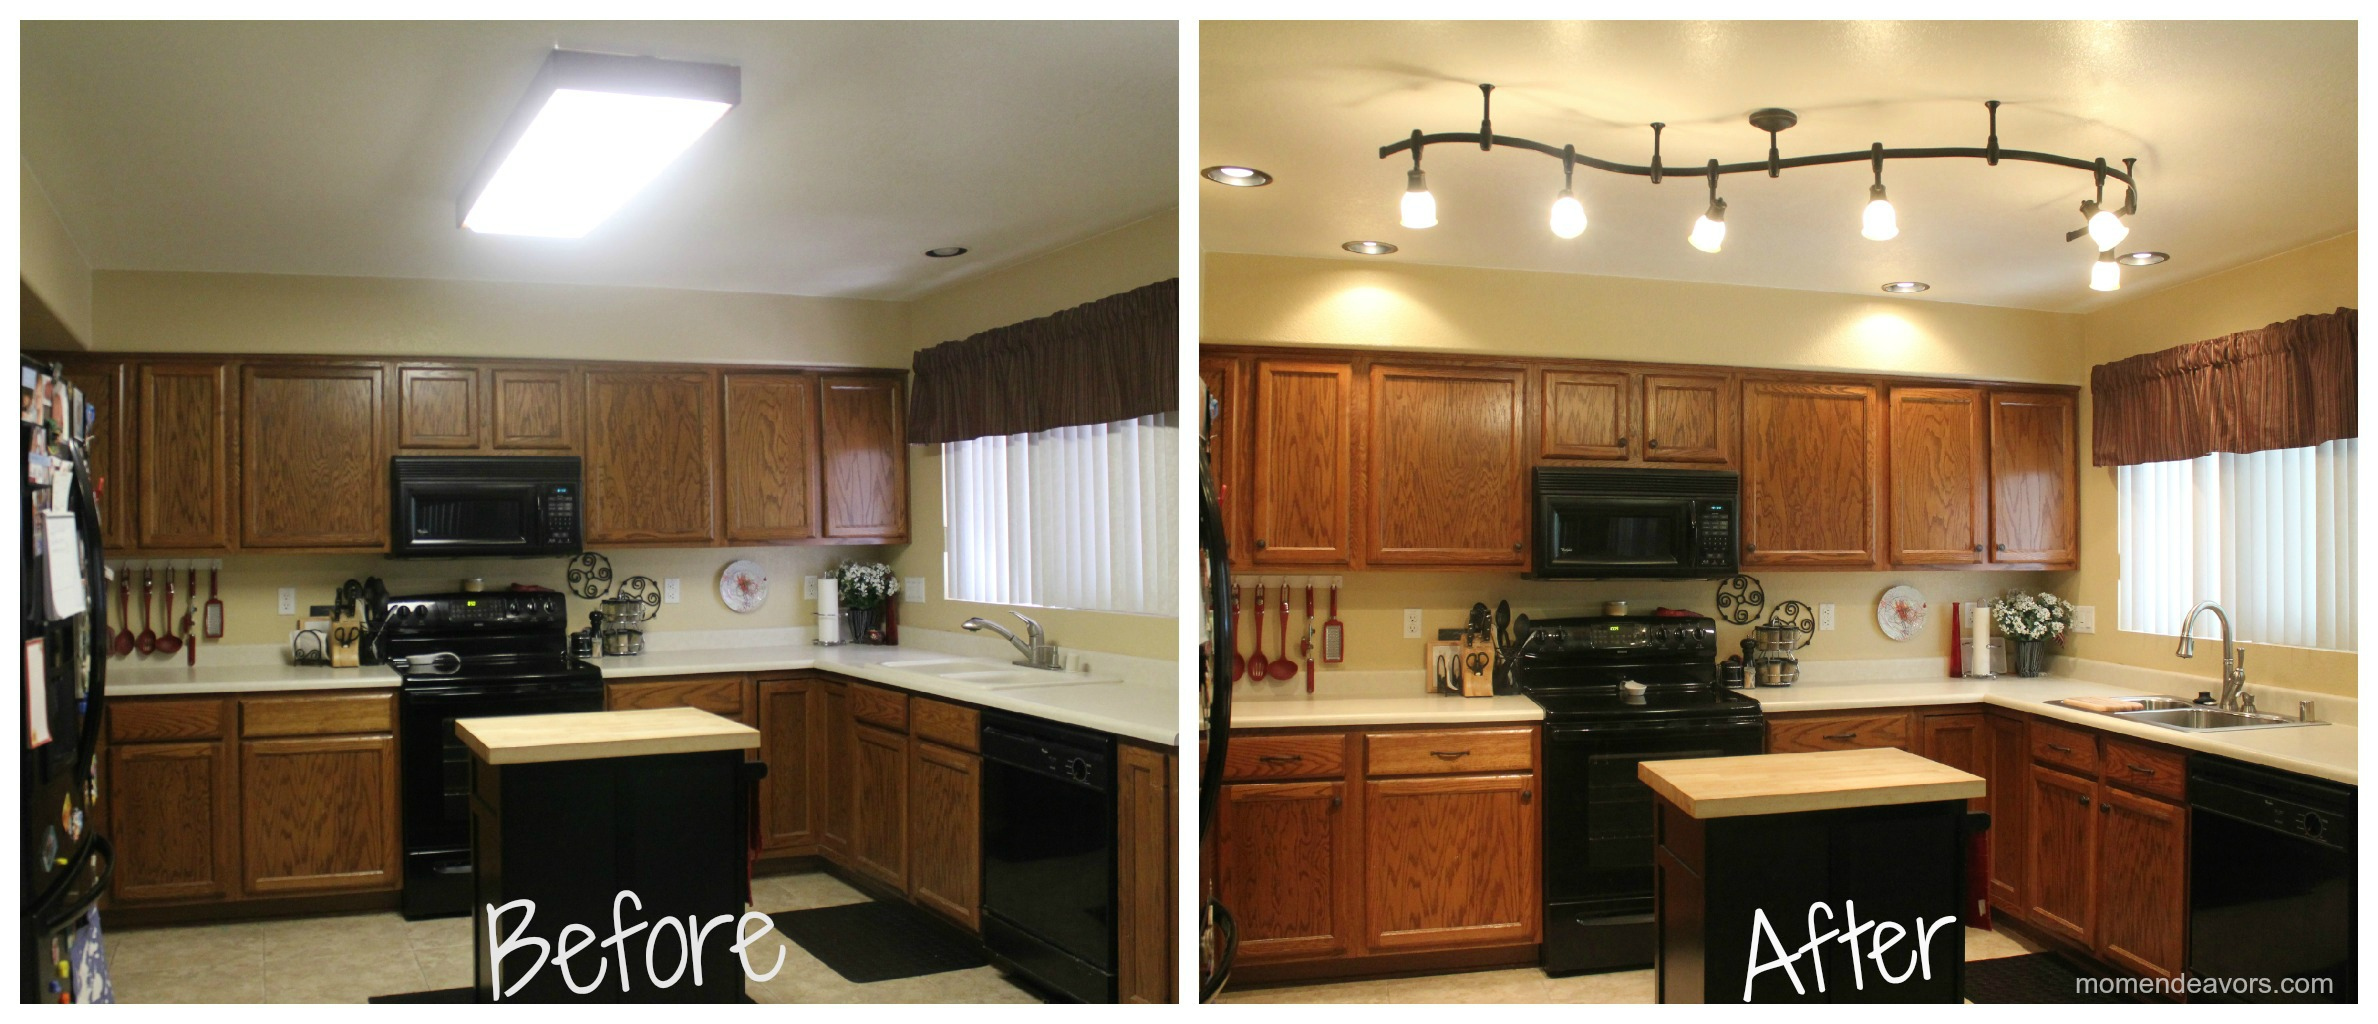 Mini Kitchen Remodel New Lighting Makes A WORLD Of Difference - Kitchen light fixtures to replace fluorescent